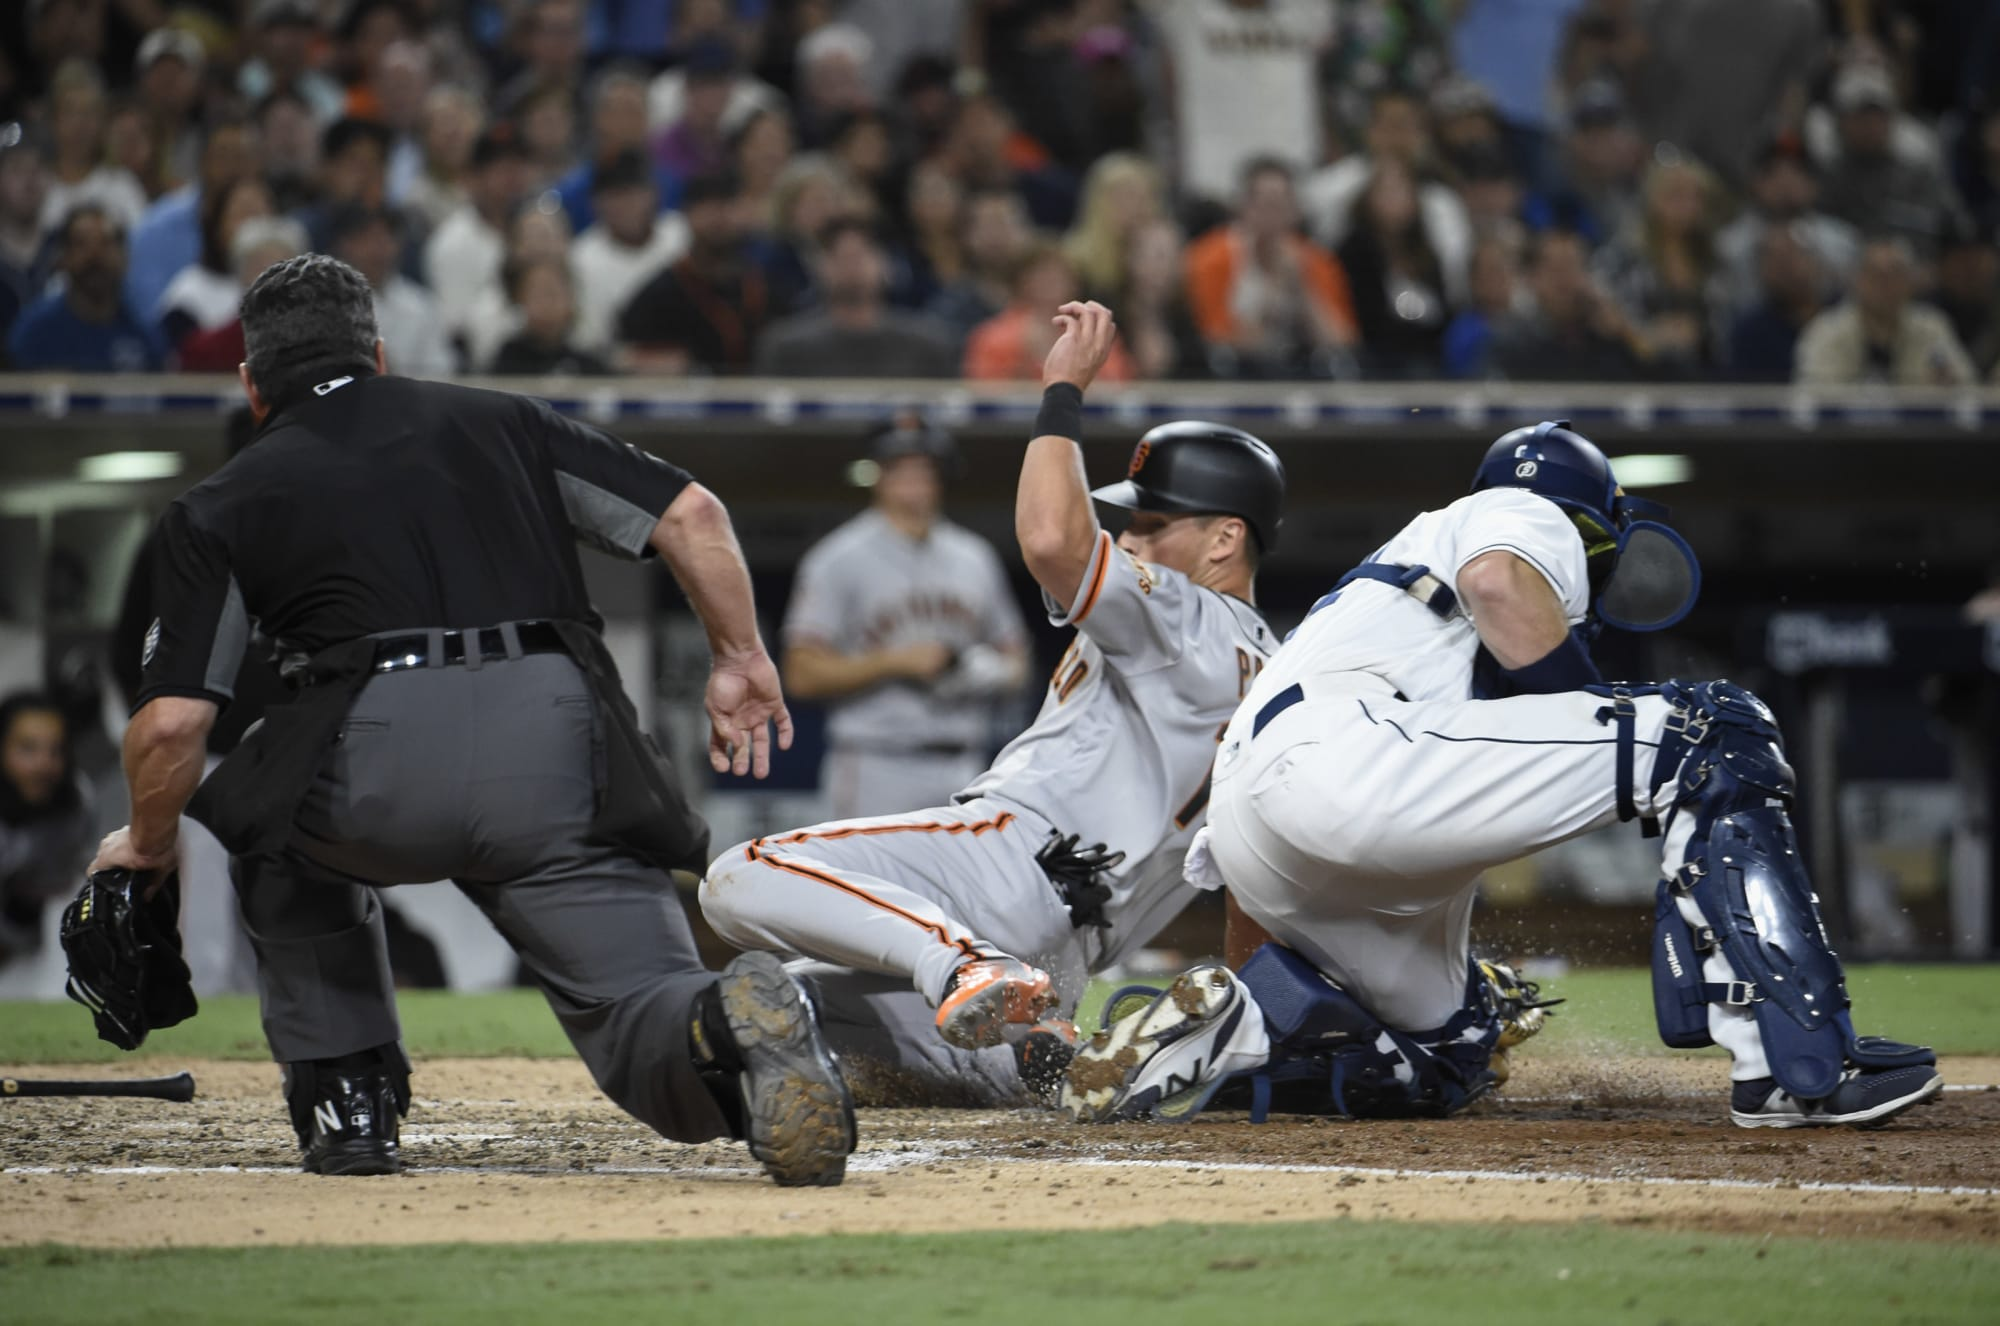 San Francisco Giants Drop Second Straight to Padres Behind Dubious Replay